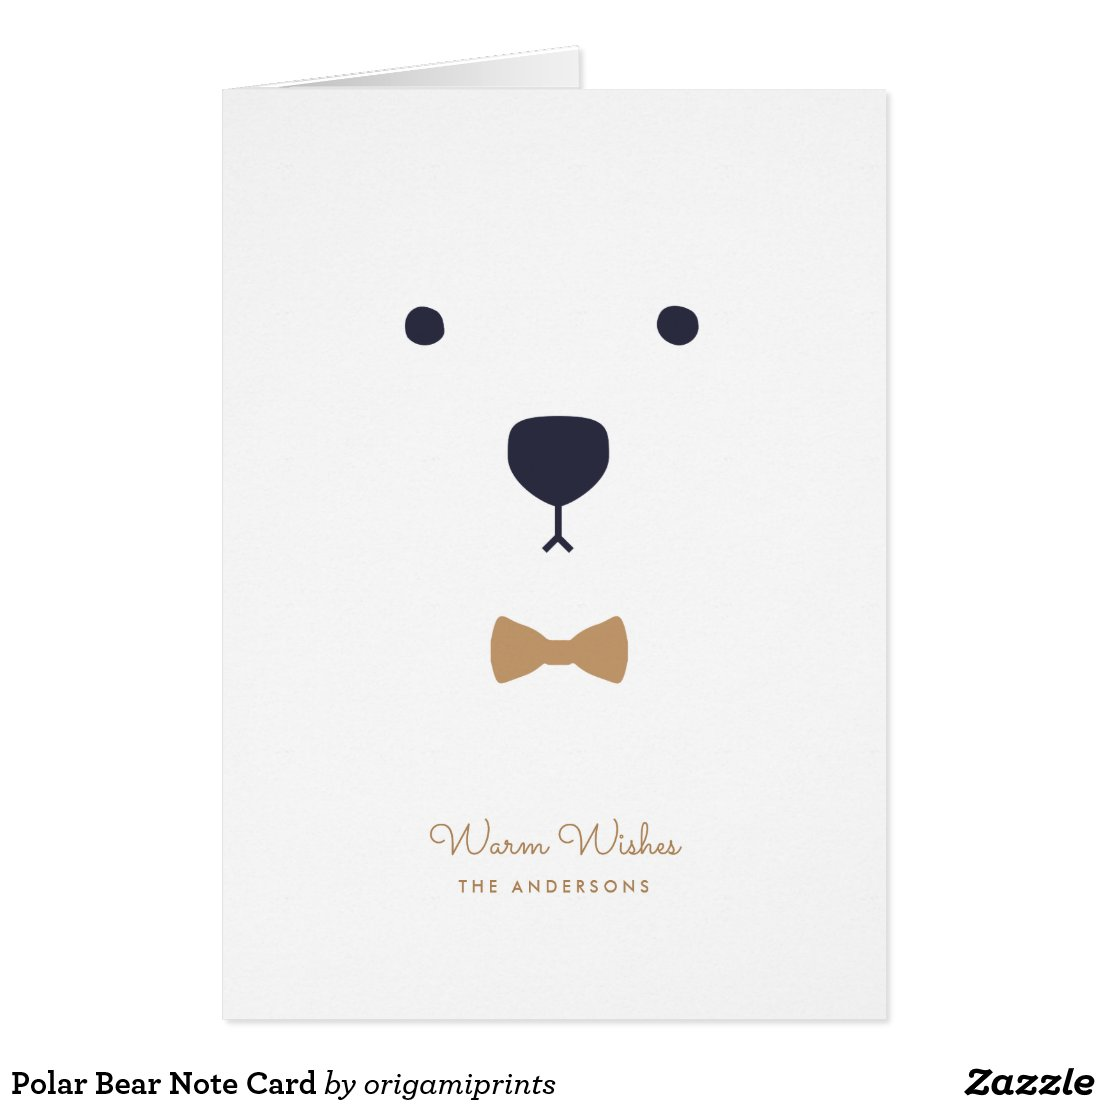 Polar Bear Note Card